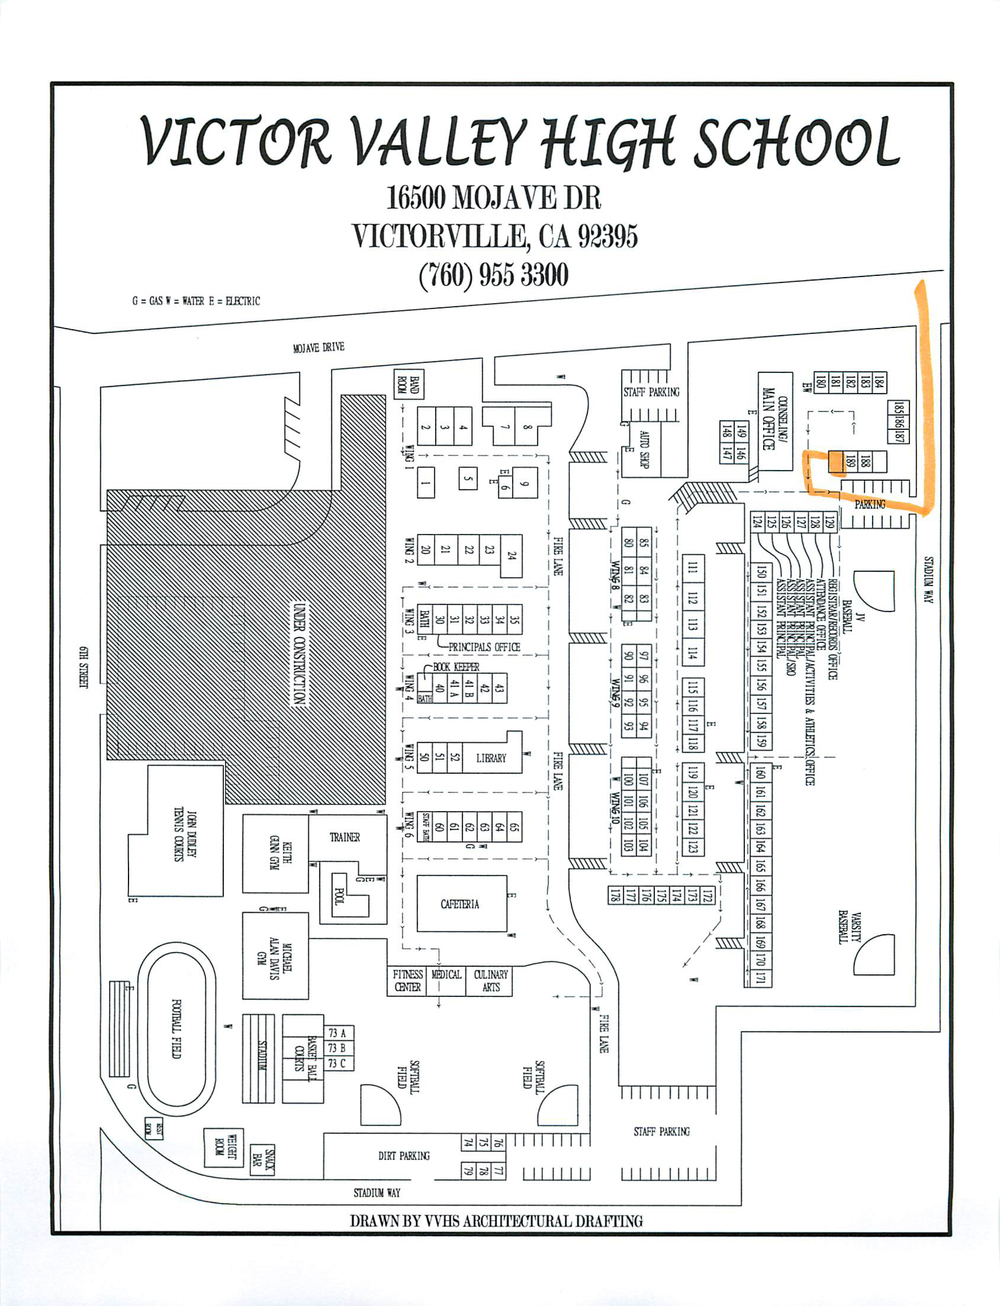 Our Victor Valley High School Summer Senior Portrait Location is in the upper staff room on the Victor Valley High School Campus.  Parents can park next to the building the the gate.  The room is not numbered, but it it was, it would be Room 190.